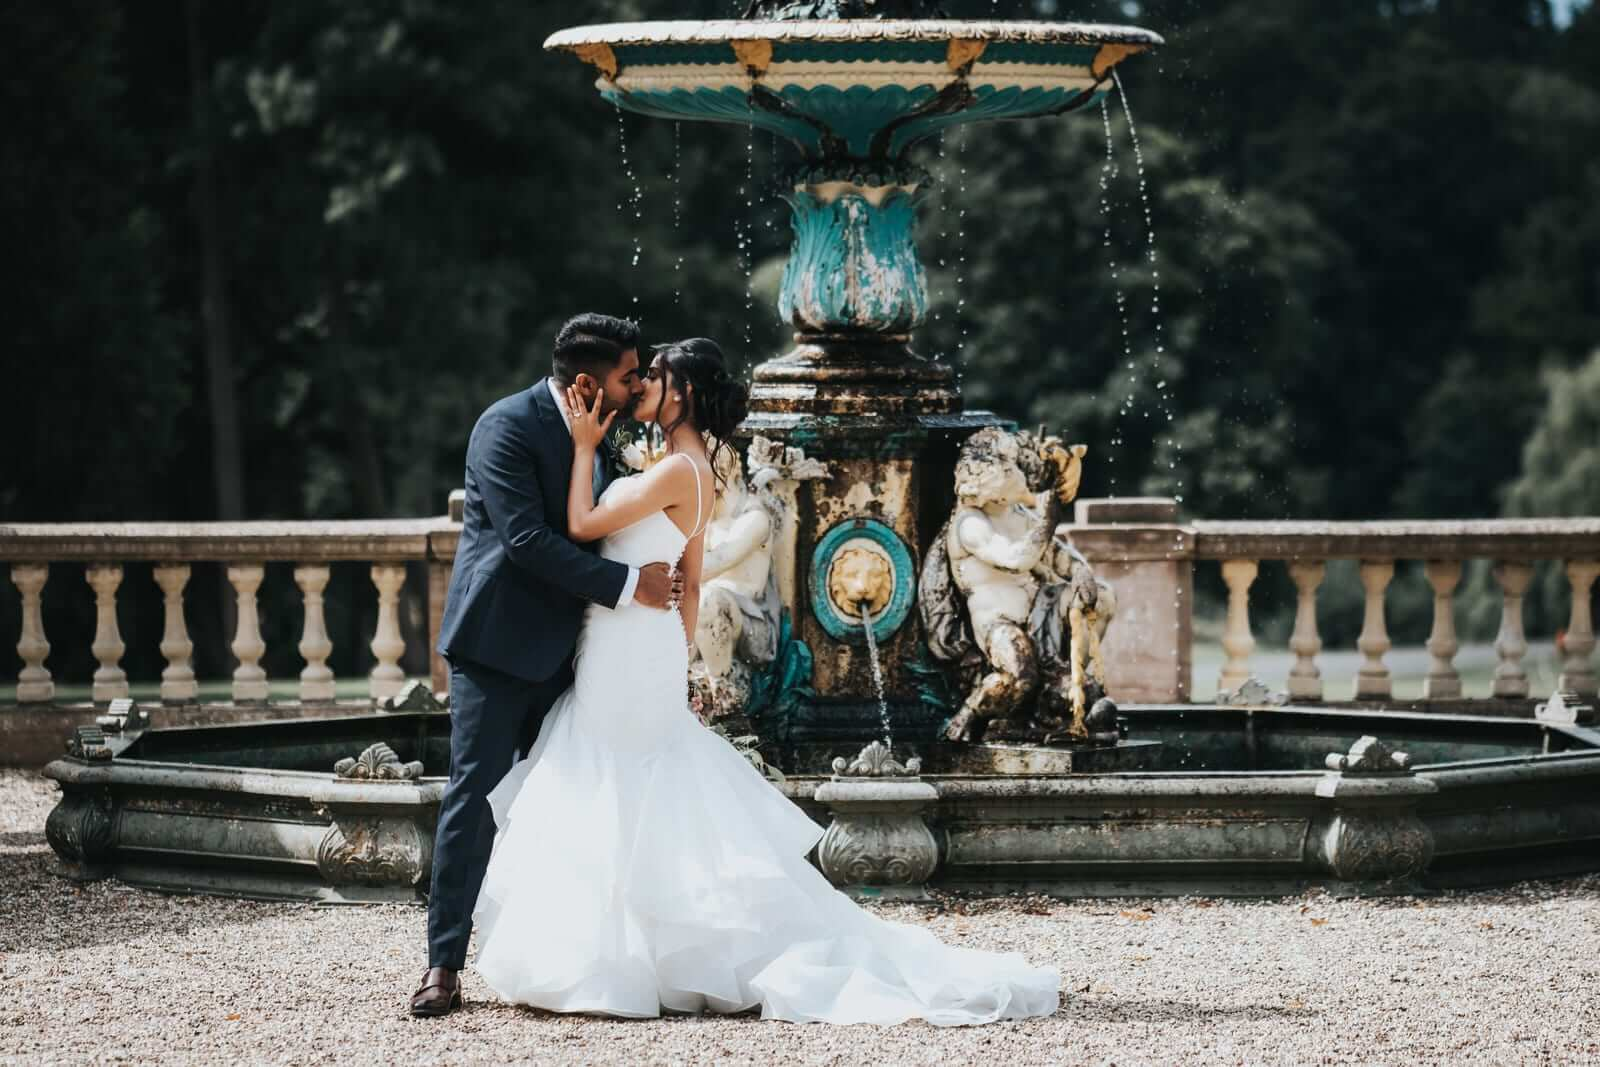 Brides and groom kissing in the park.